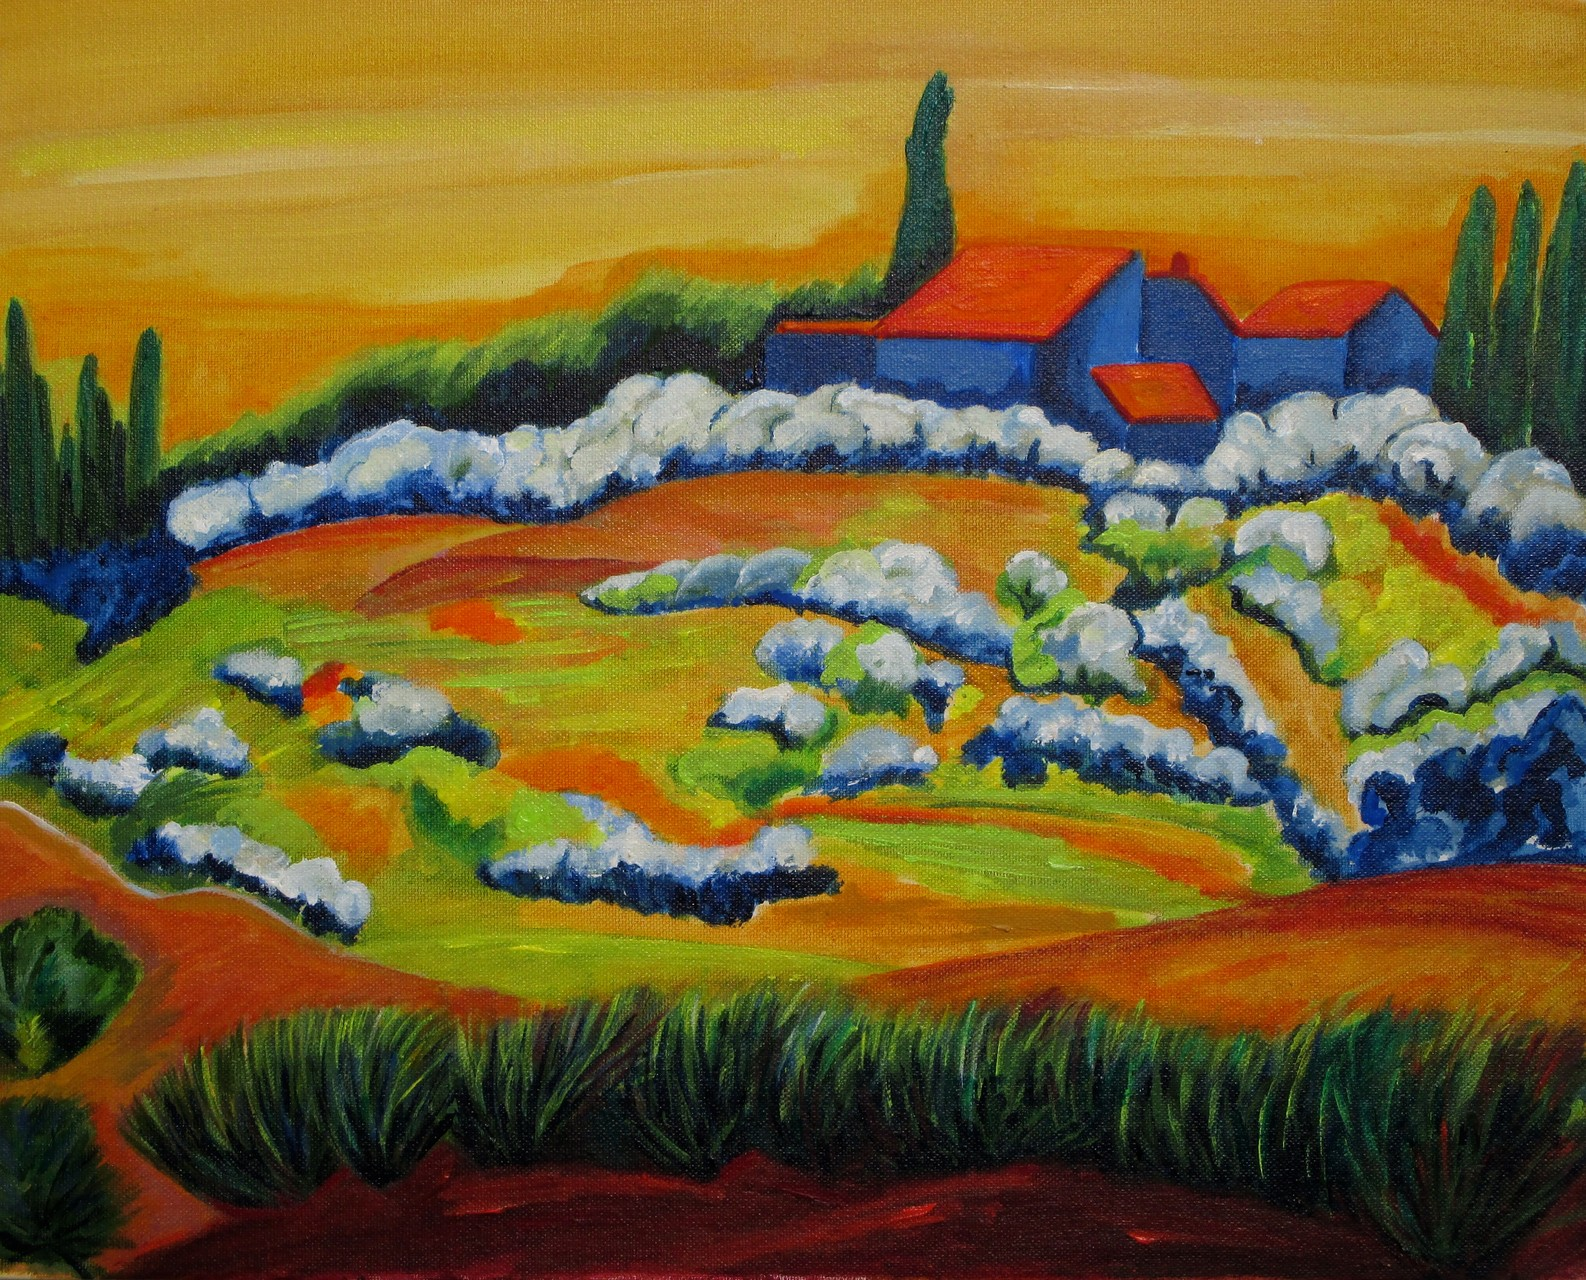 Tuscan Hills, oil on canvas, 20 x 16, 2015